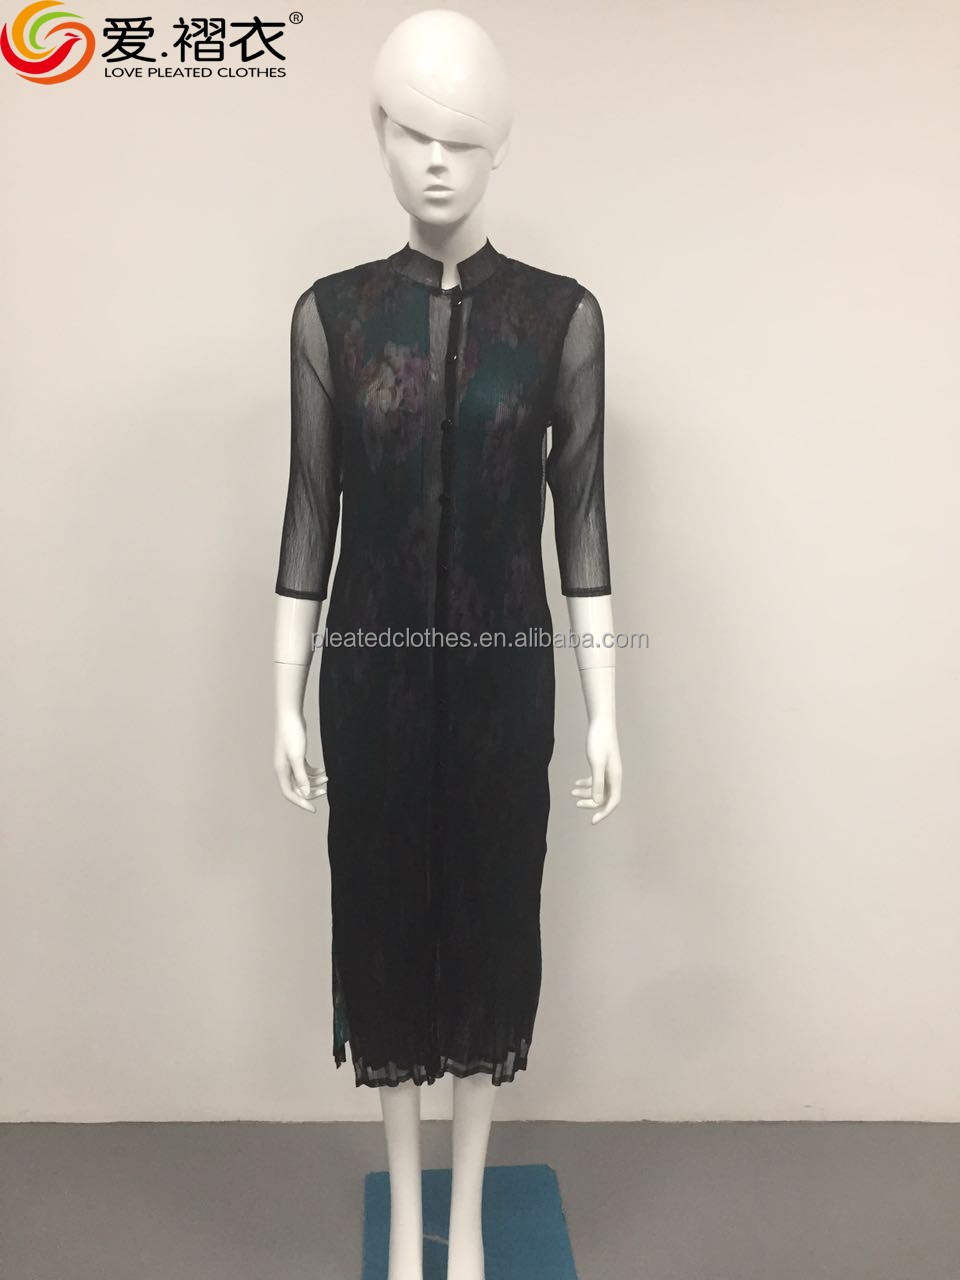 Traditional Chinese Dress Traditional Chinese Dress Suppliers and ...